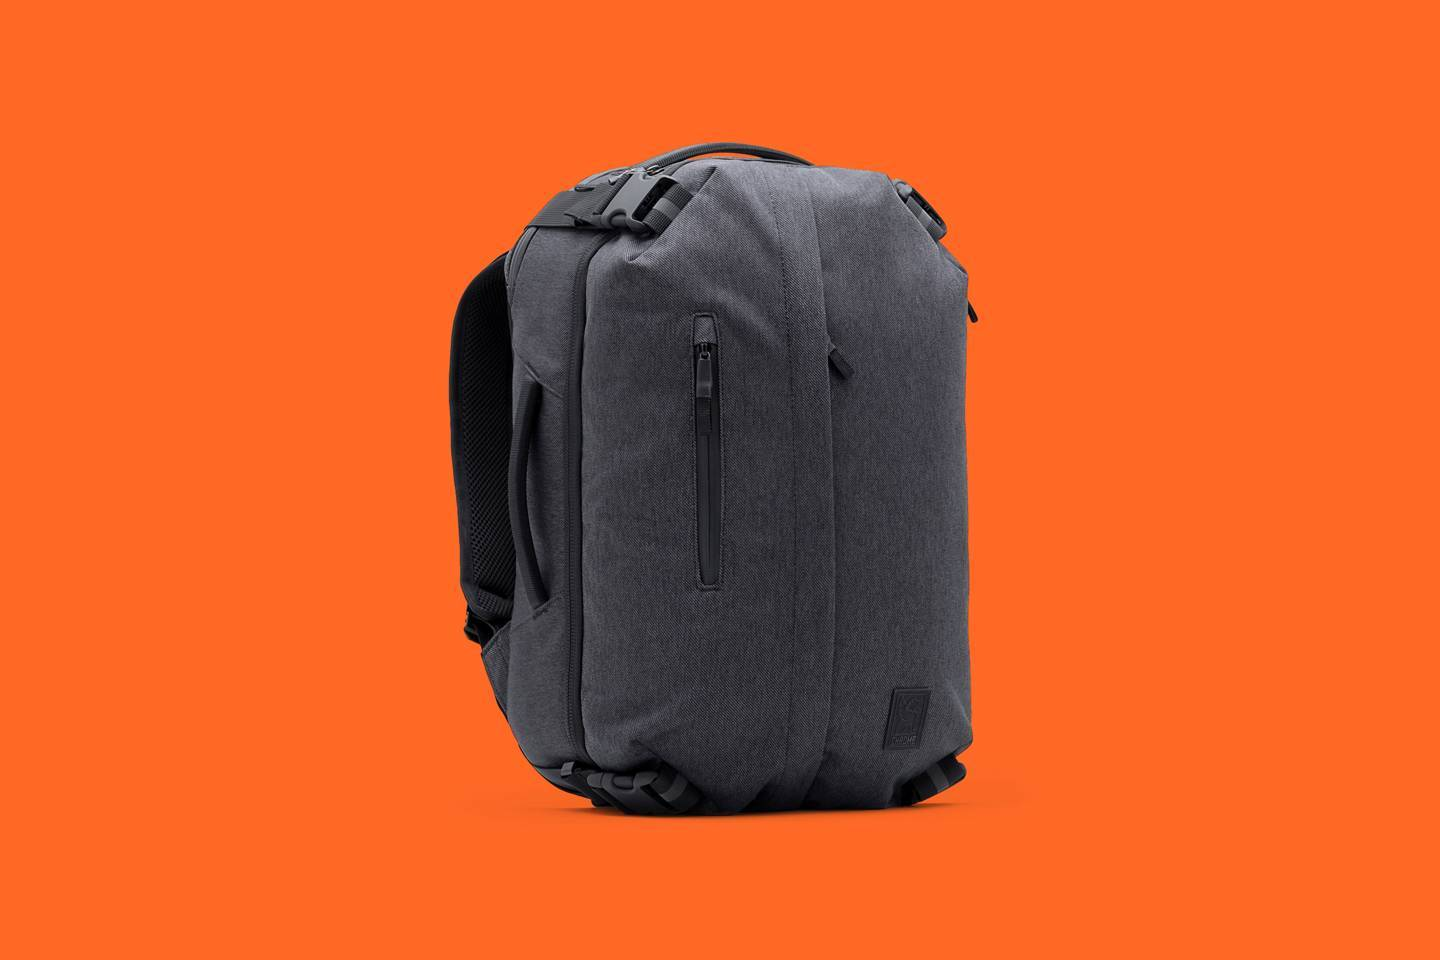 The best suitcases and carry on luggage in 2019 | WIRED UK